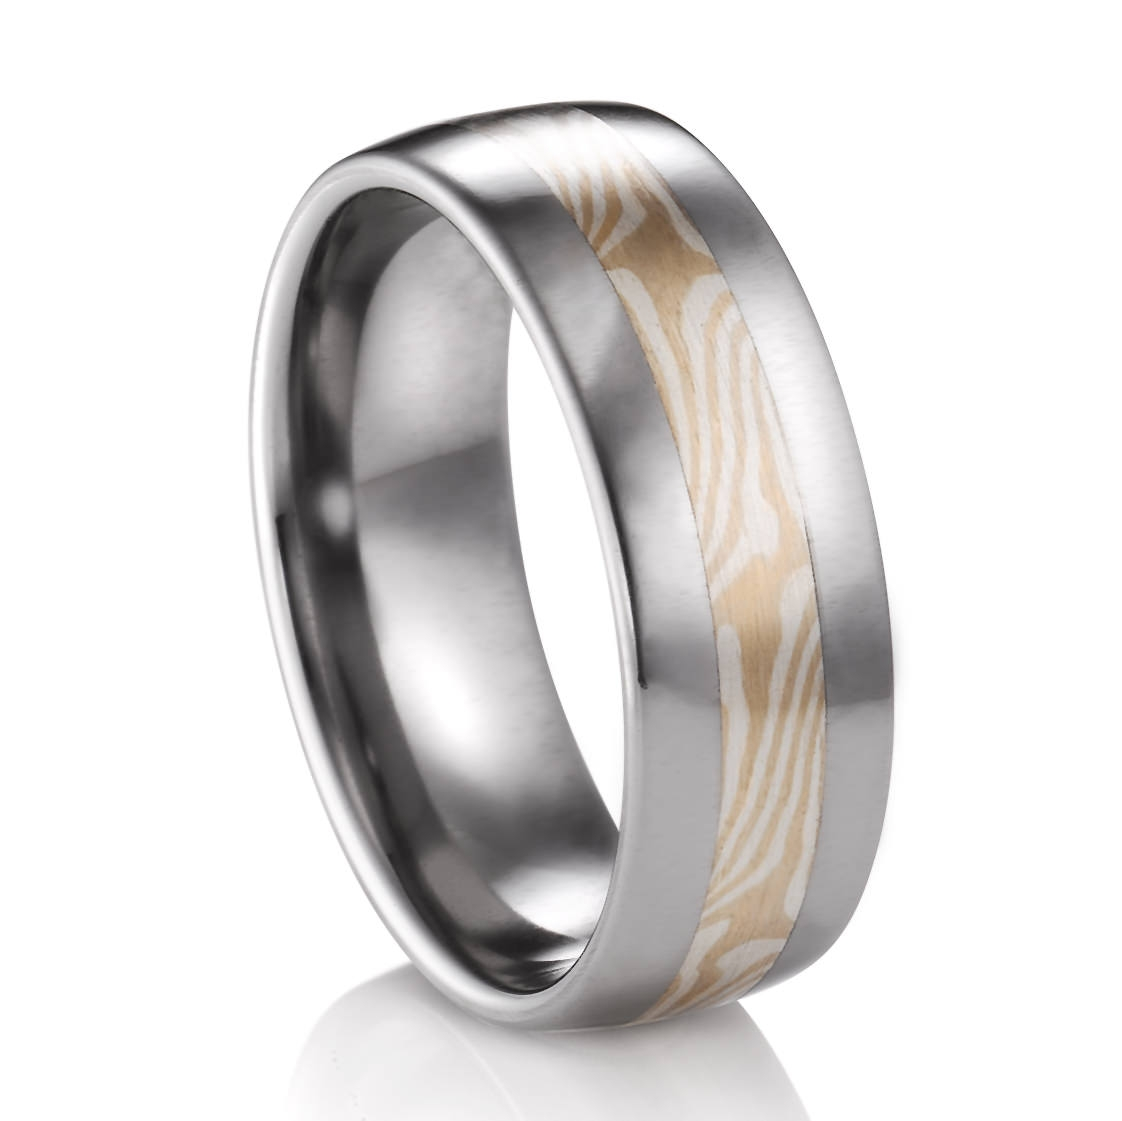 Mokume Gane Titanium Ring – Mens Wedding Bands Throughout Mokume Gane Wedding Bands (View 13 of 15)